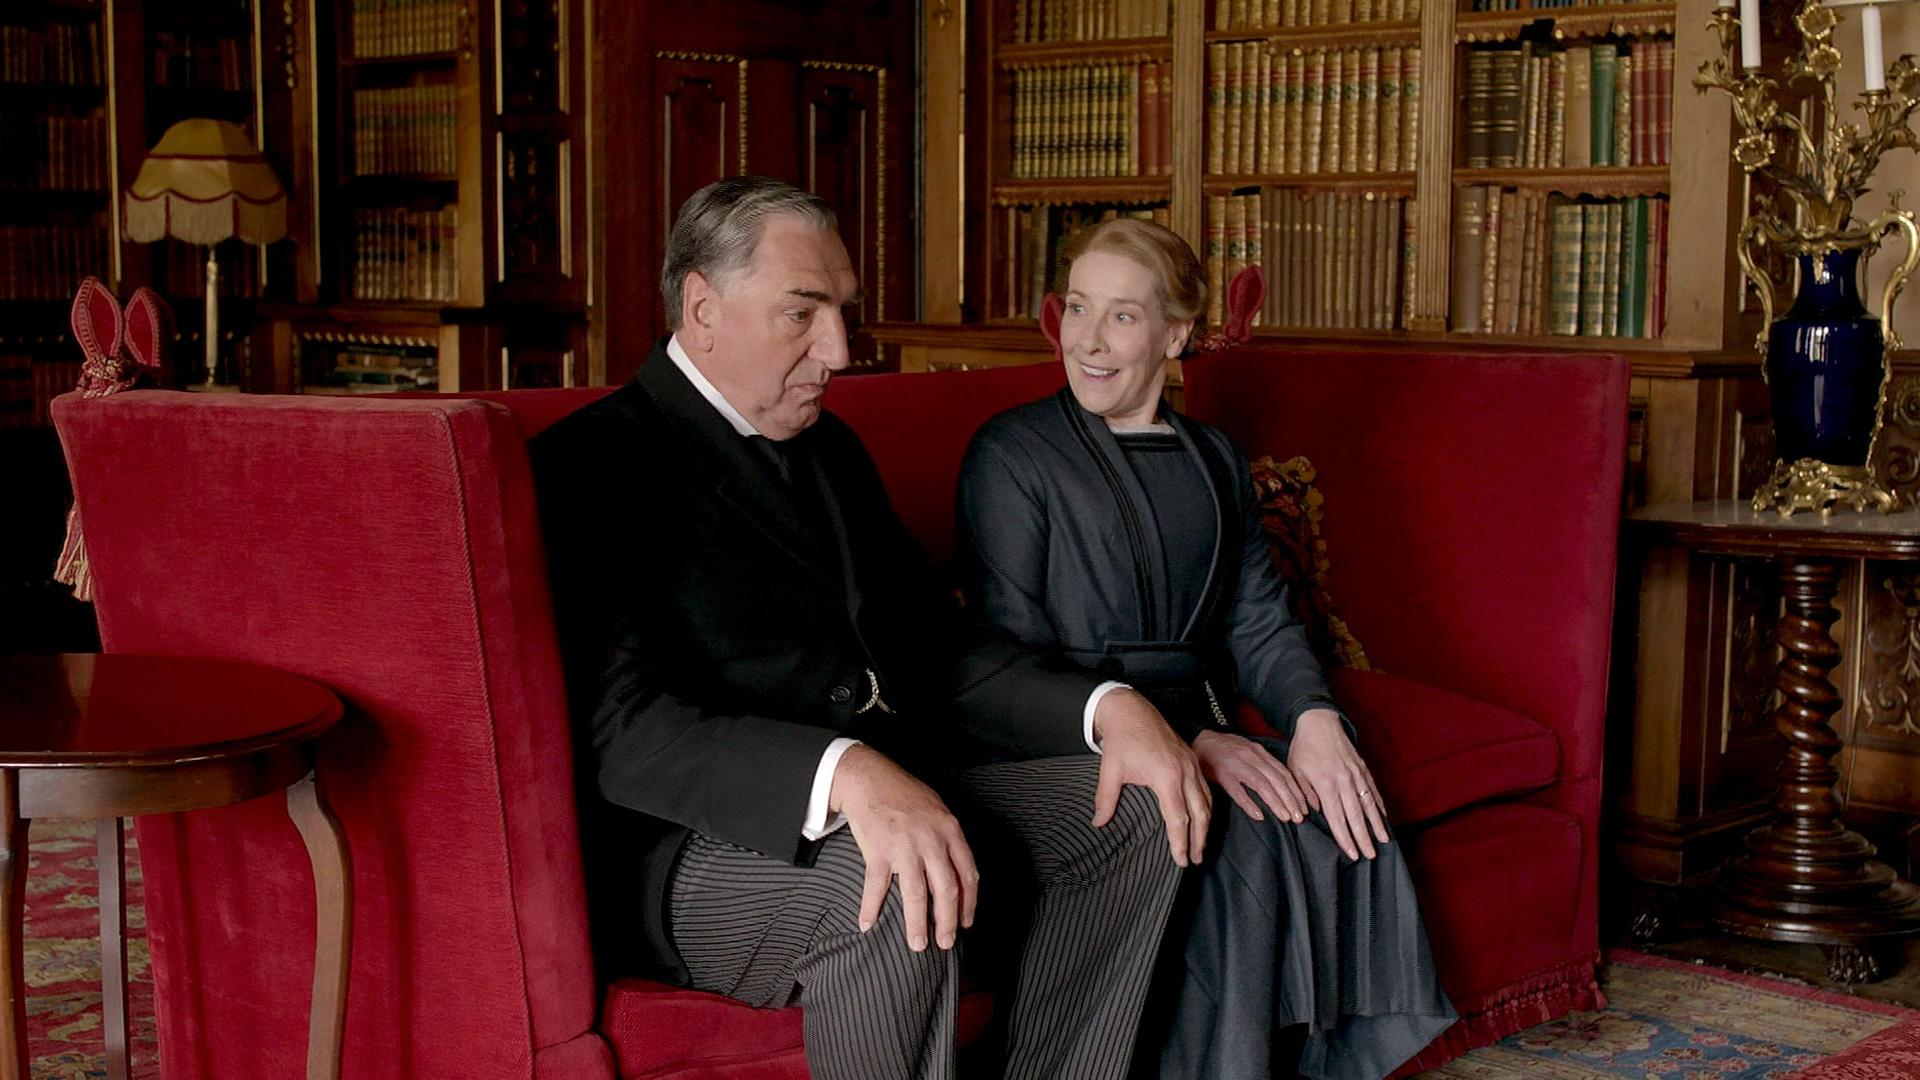 downton abbey finale season 6 streaming best guy ritchie movies